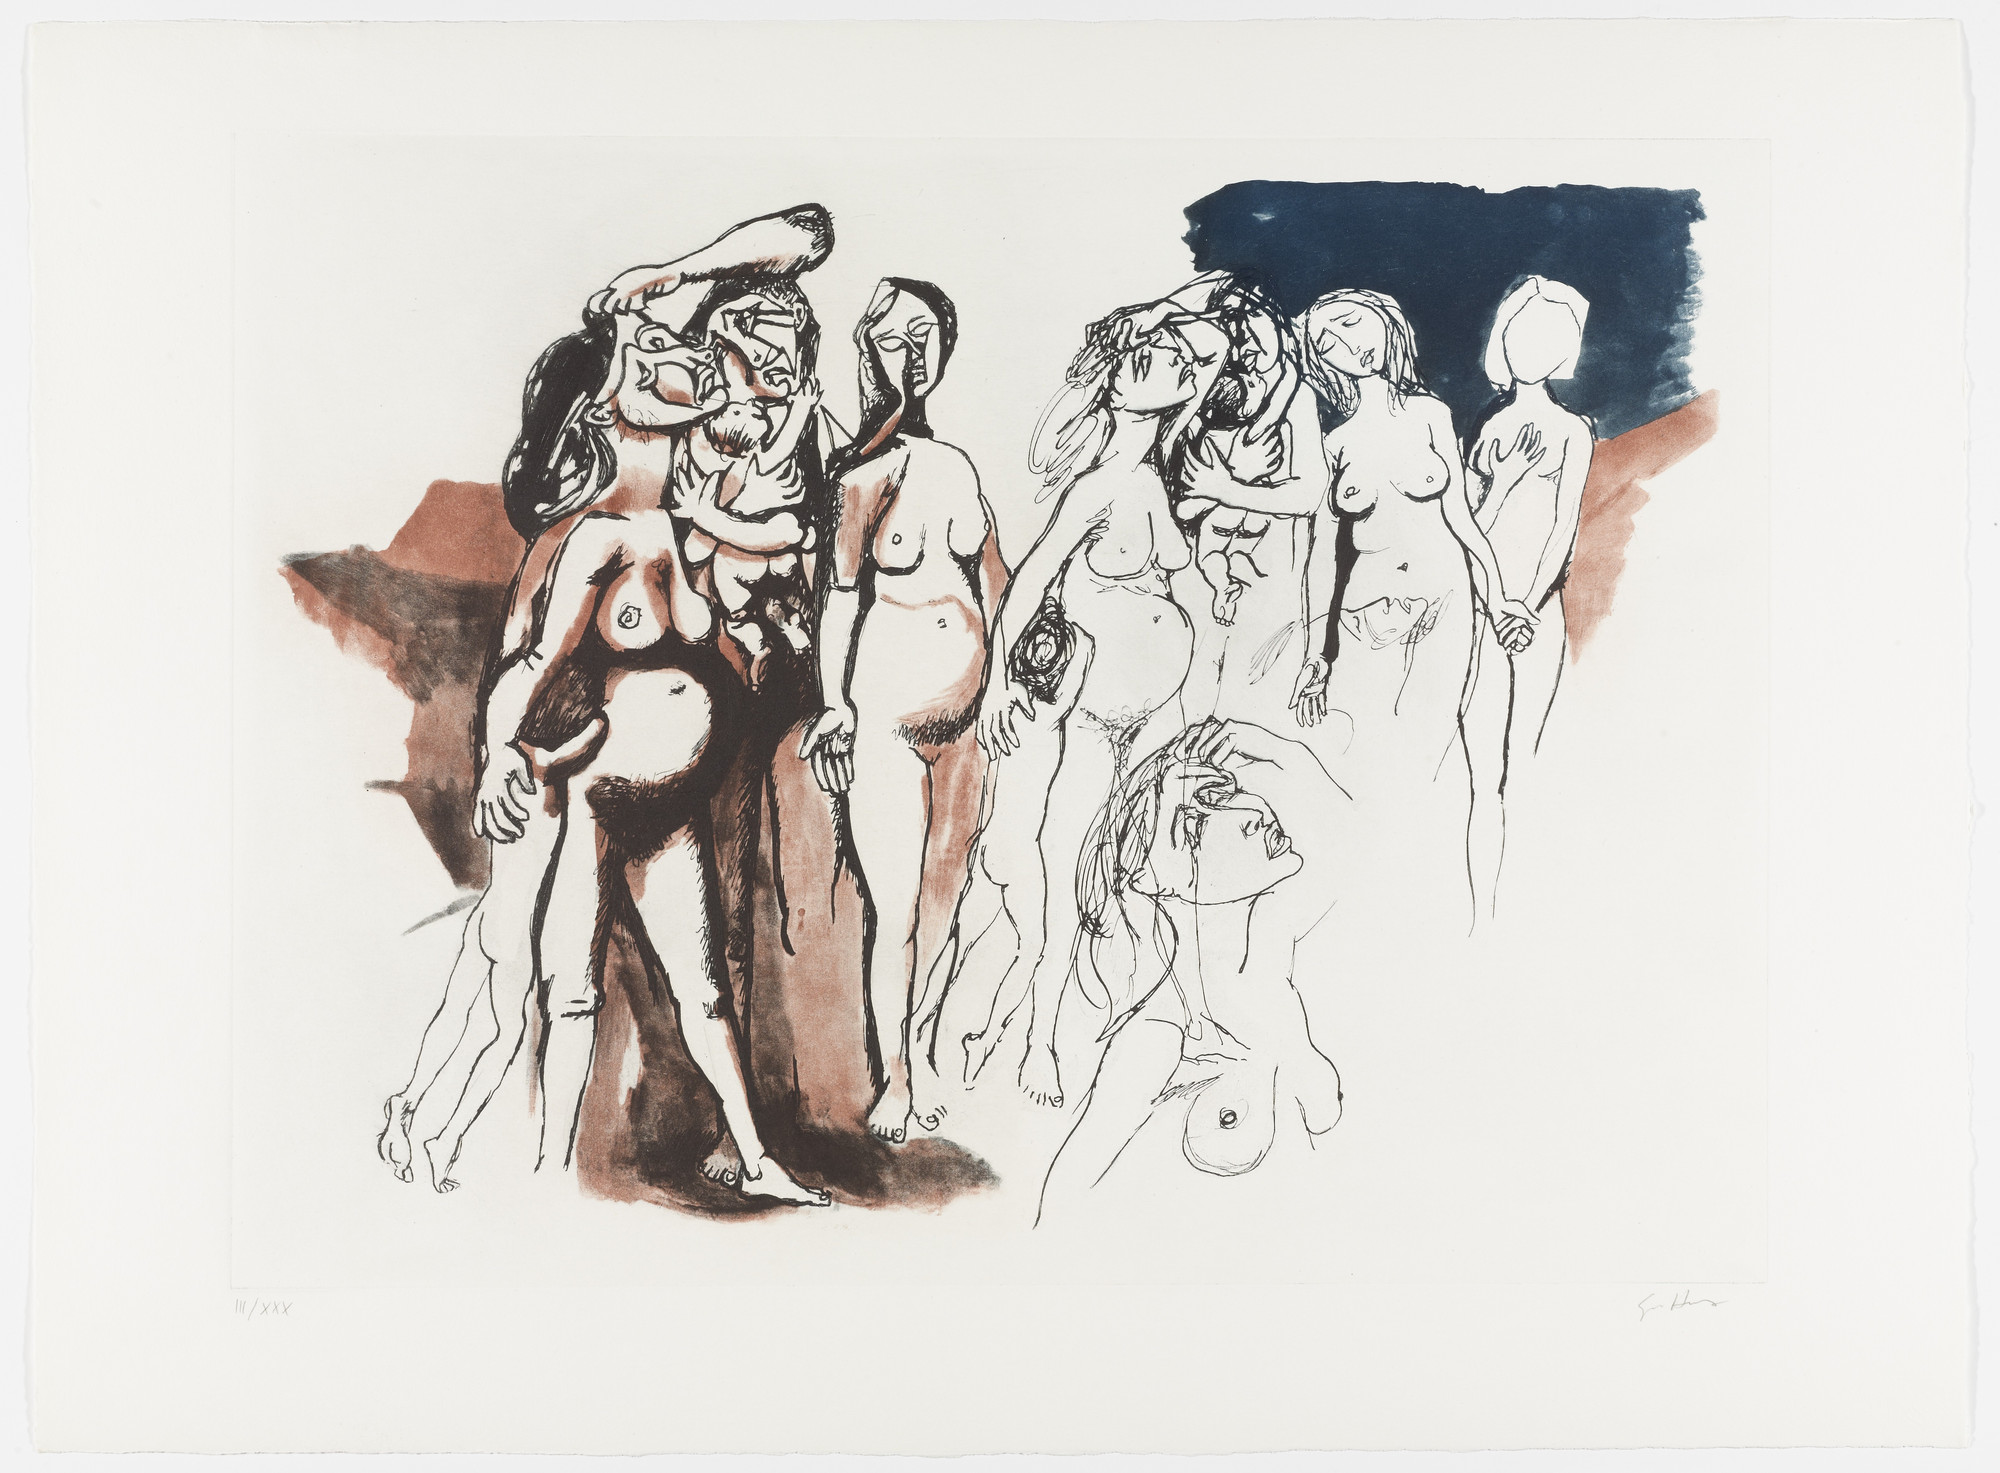 Renato Guttuso. Untitled from Homage to Picasso (Hommage à Picasso). 1973